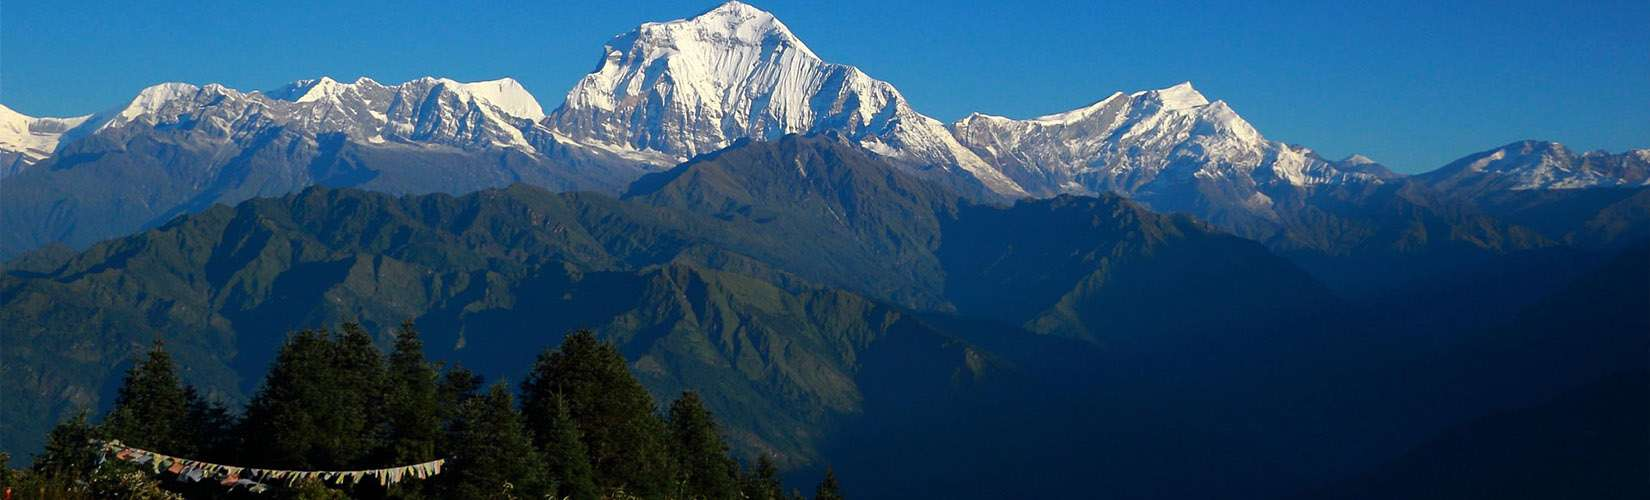 Poon Hill Annapurna Base Camp Trek in November